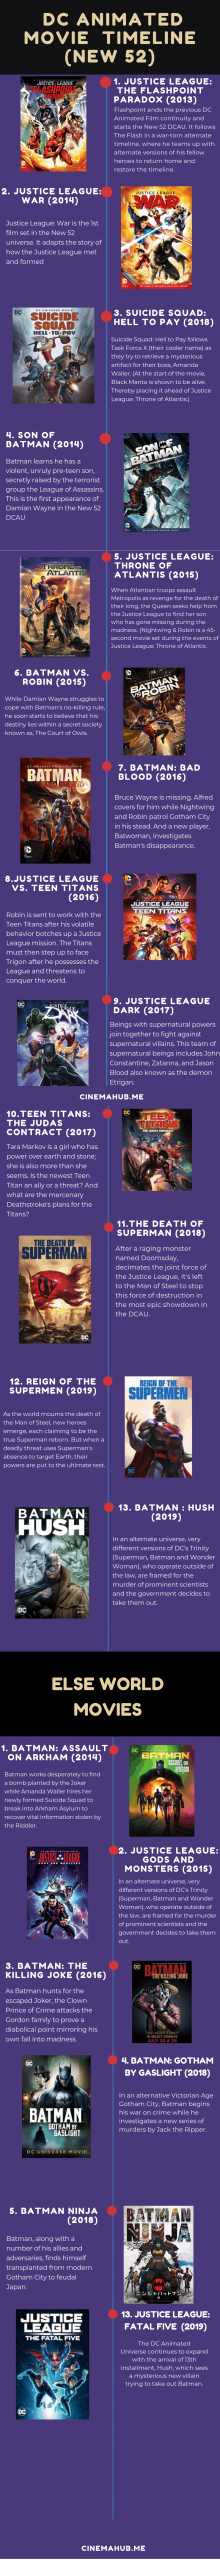 DC Animated Movie Universe (New 52 Timeline)-- Updated